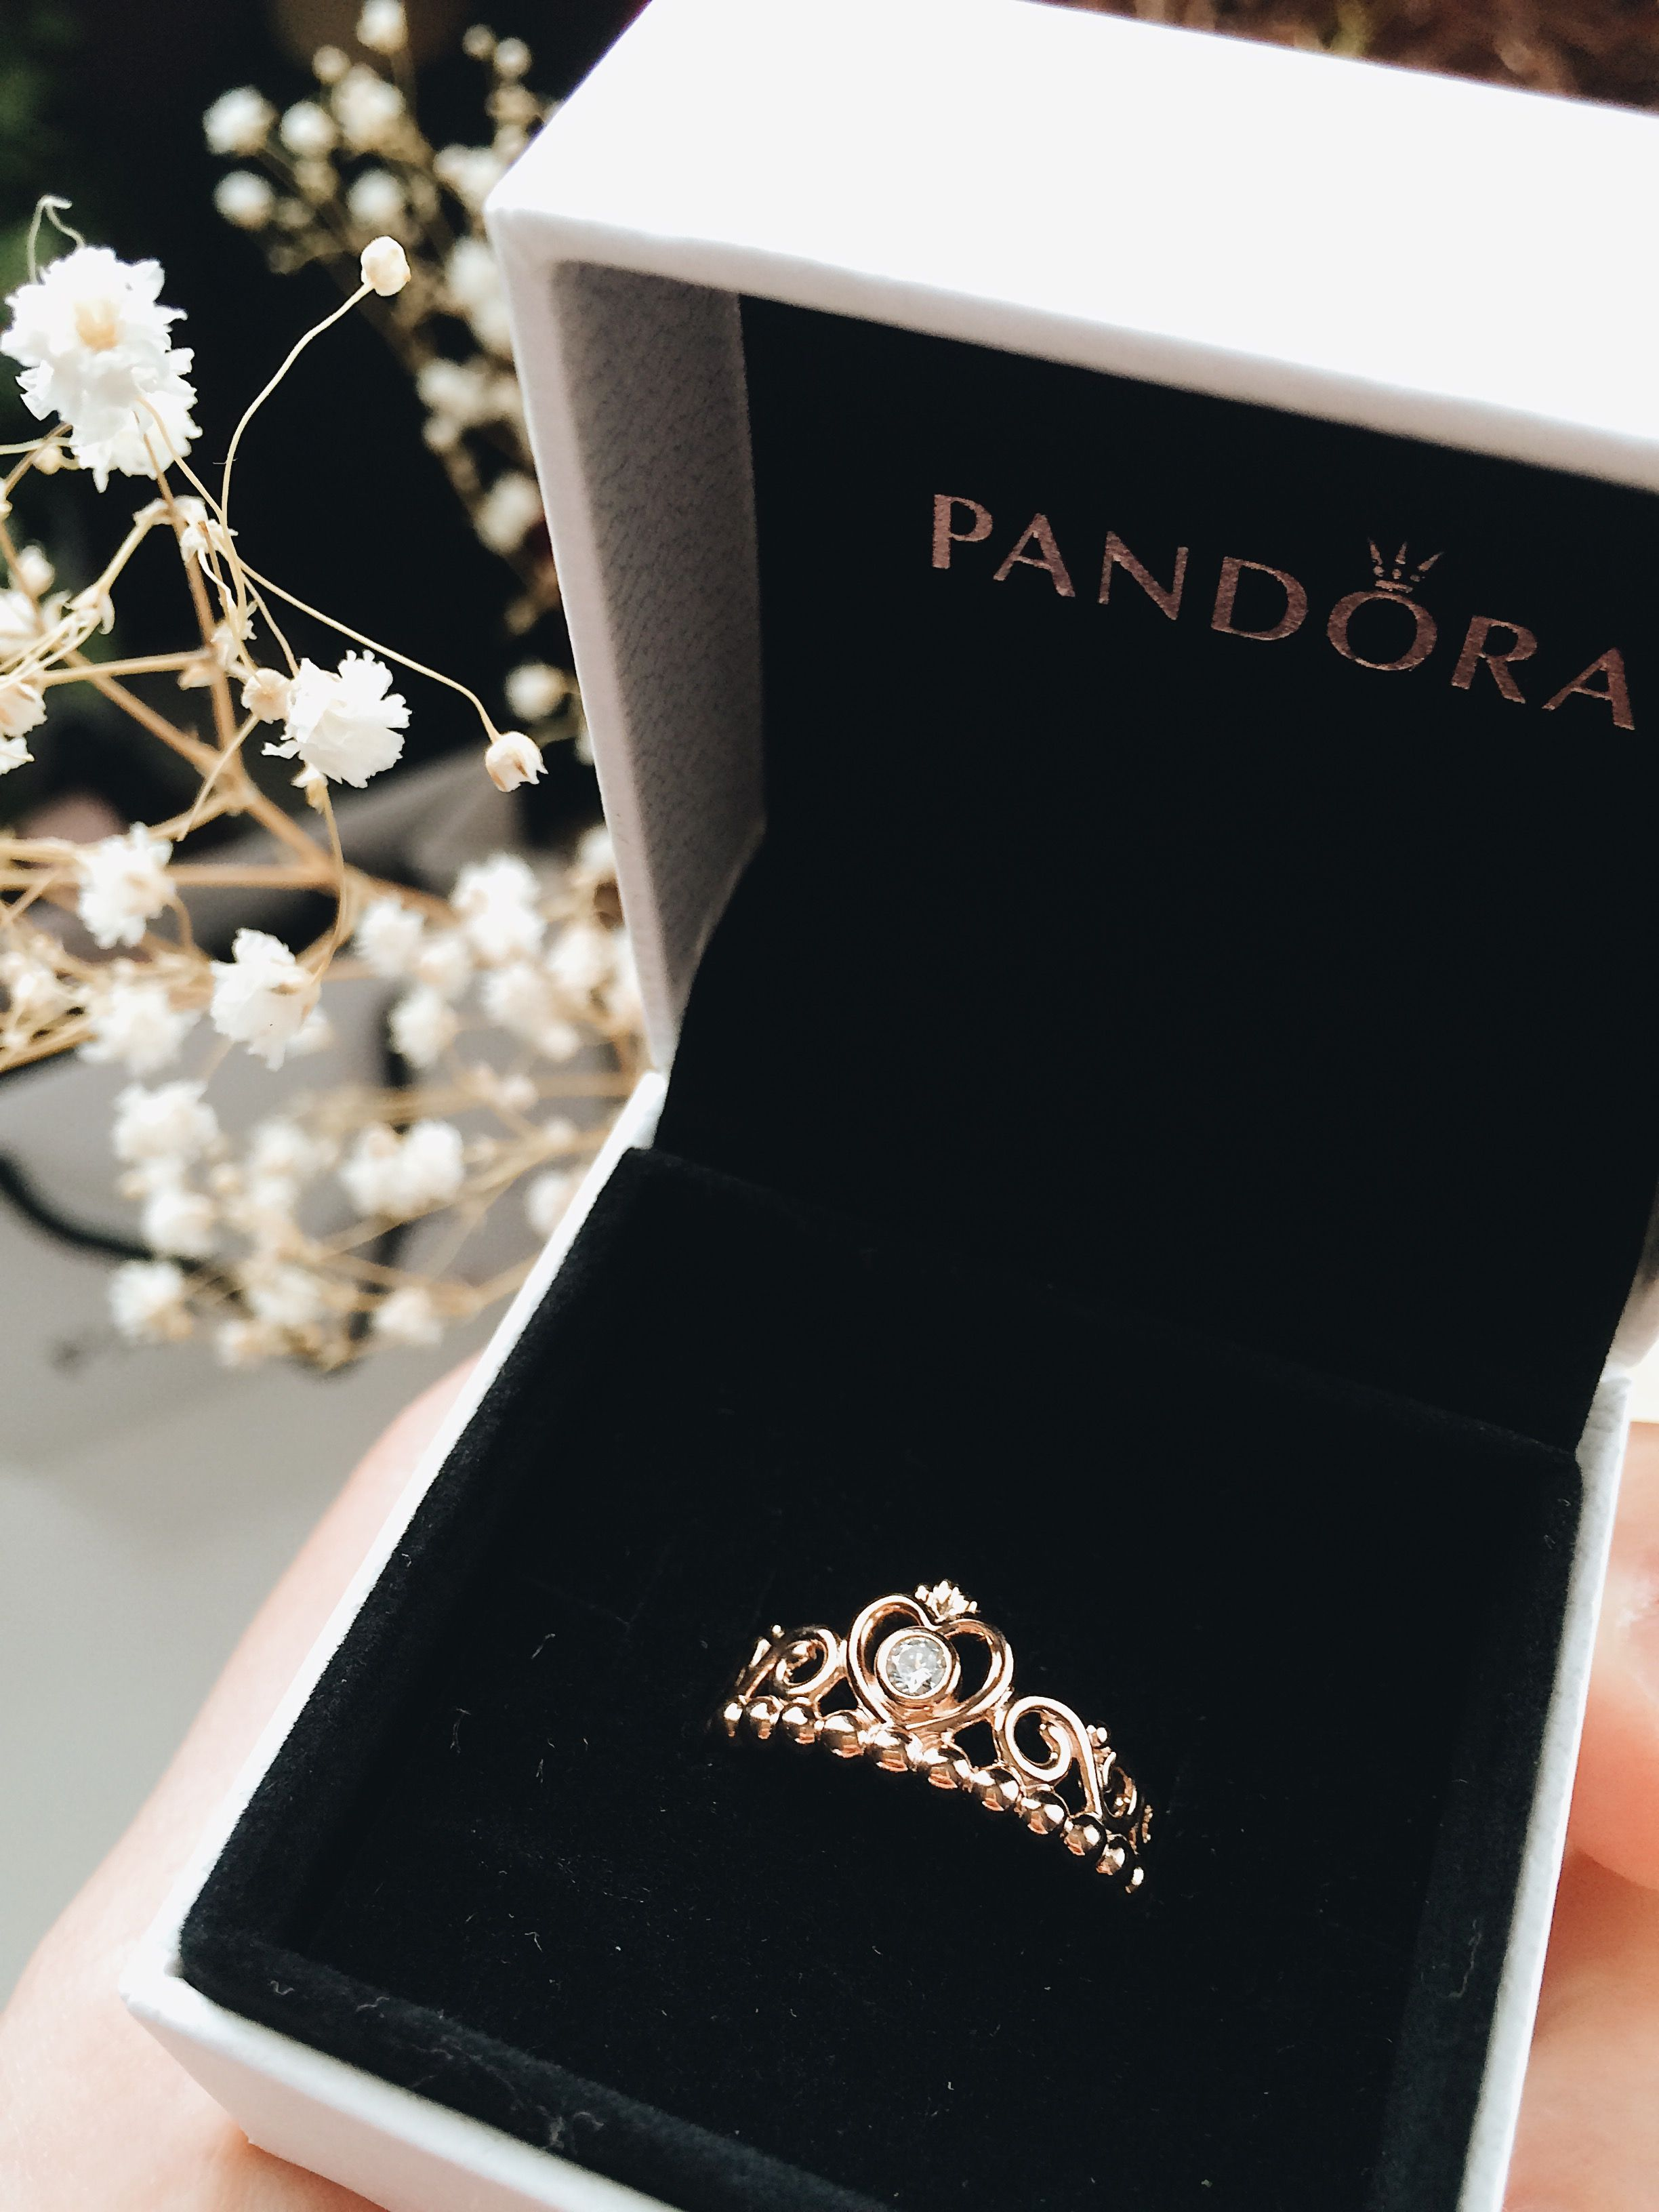 Pandora Princess Ring Pandora Rings Princess Princess Ring